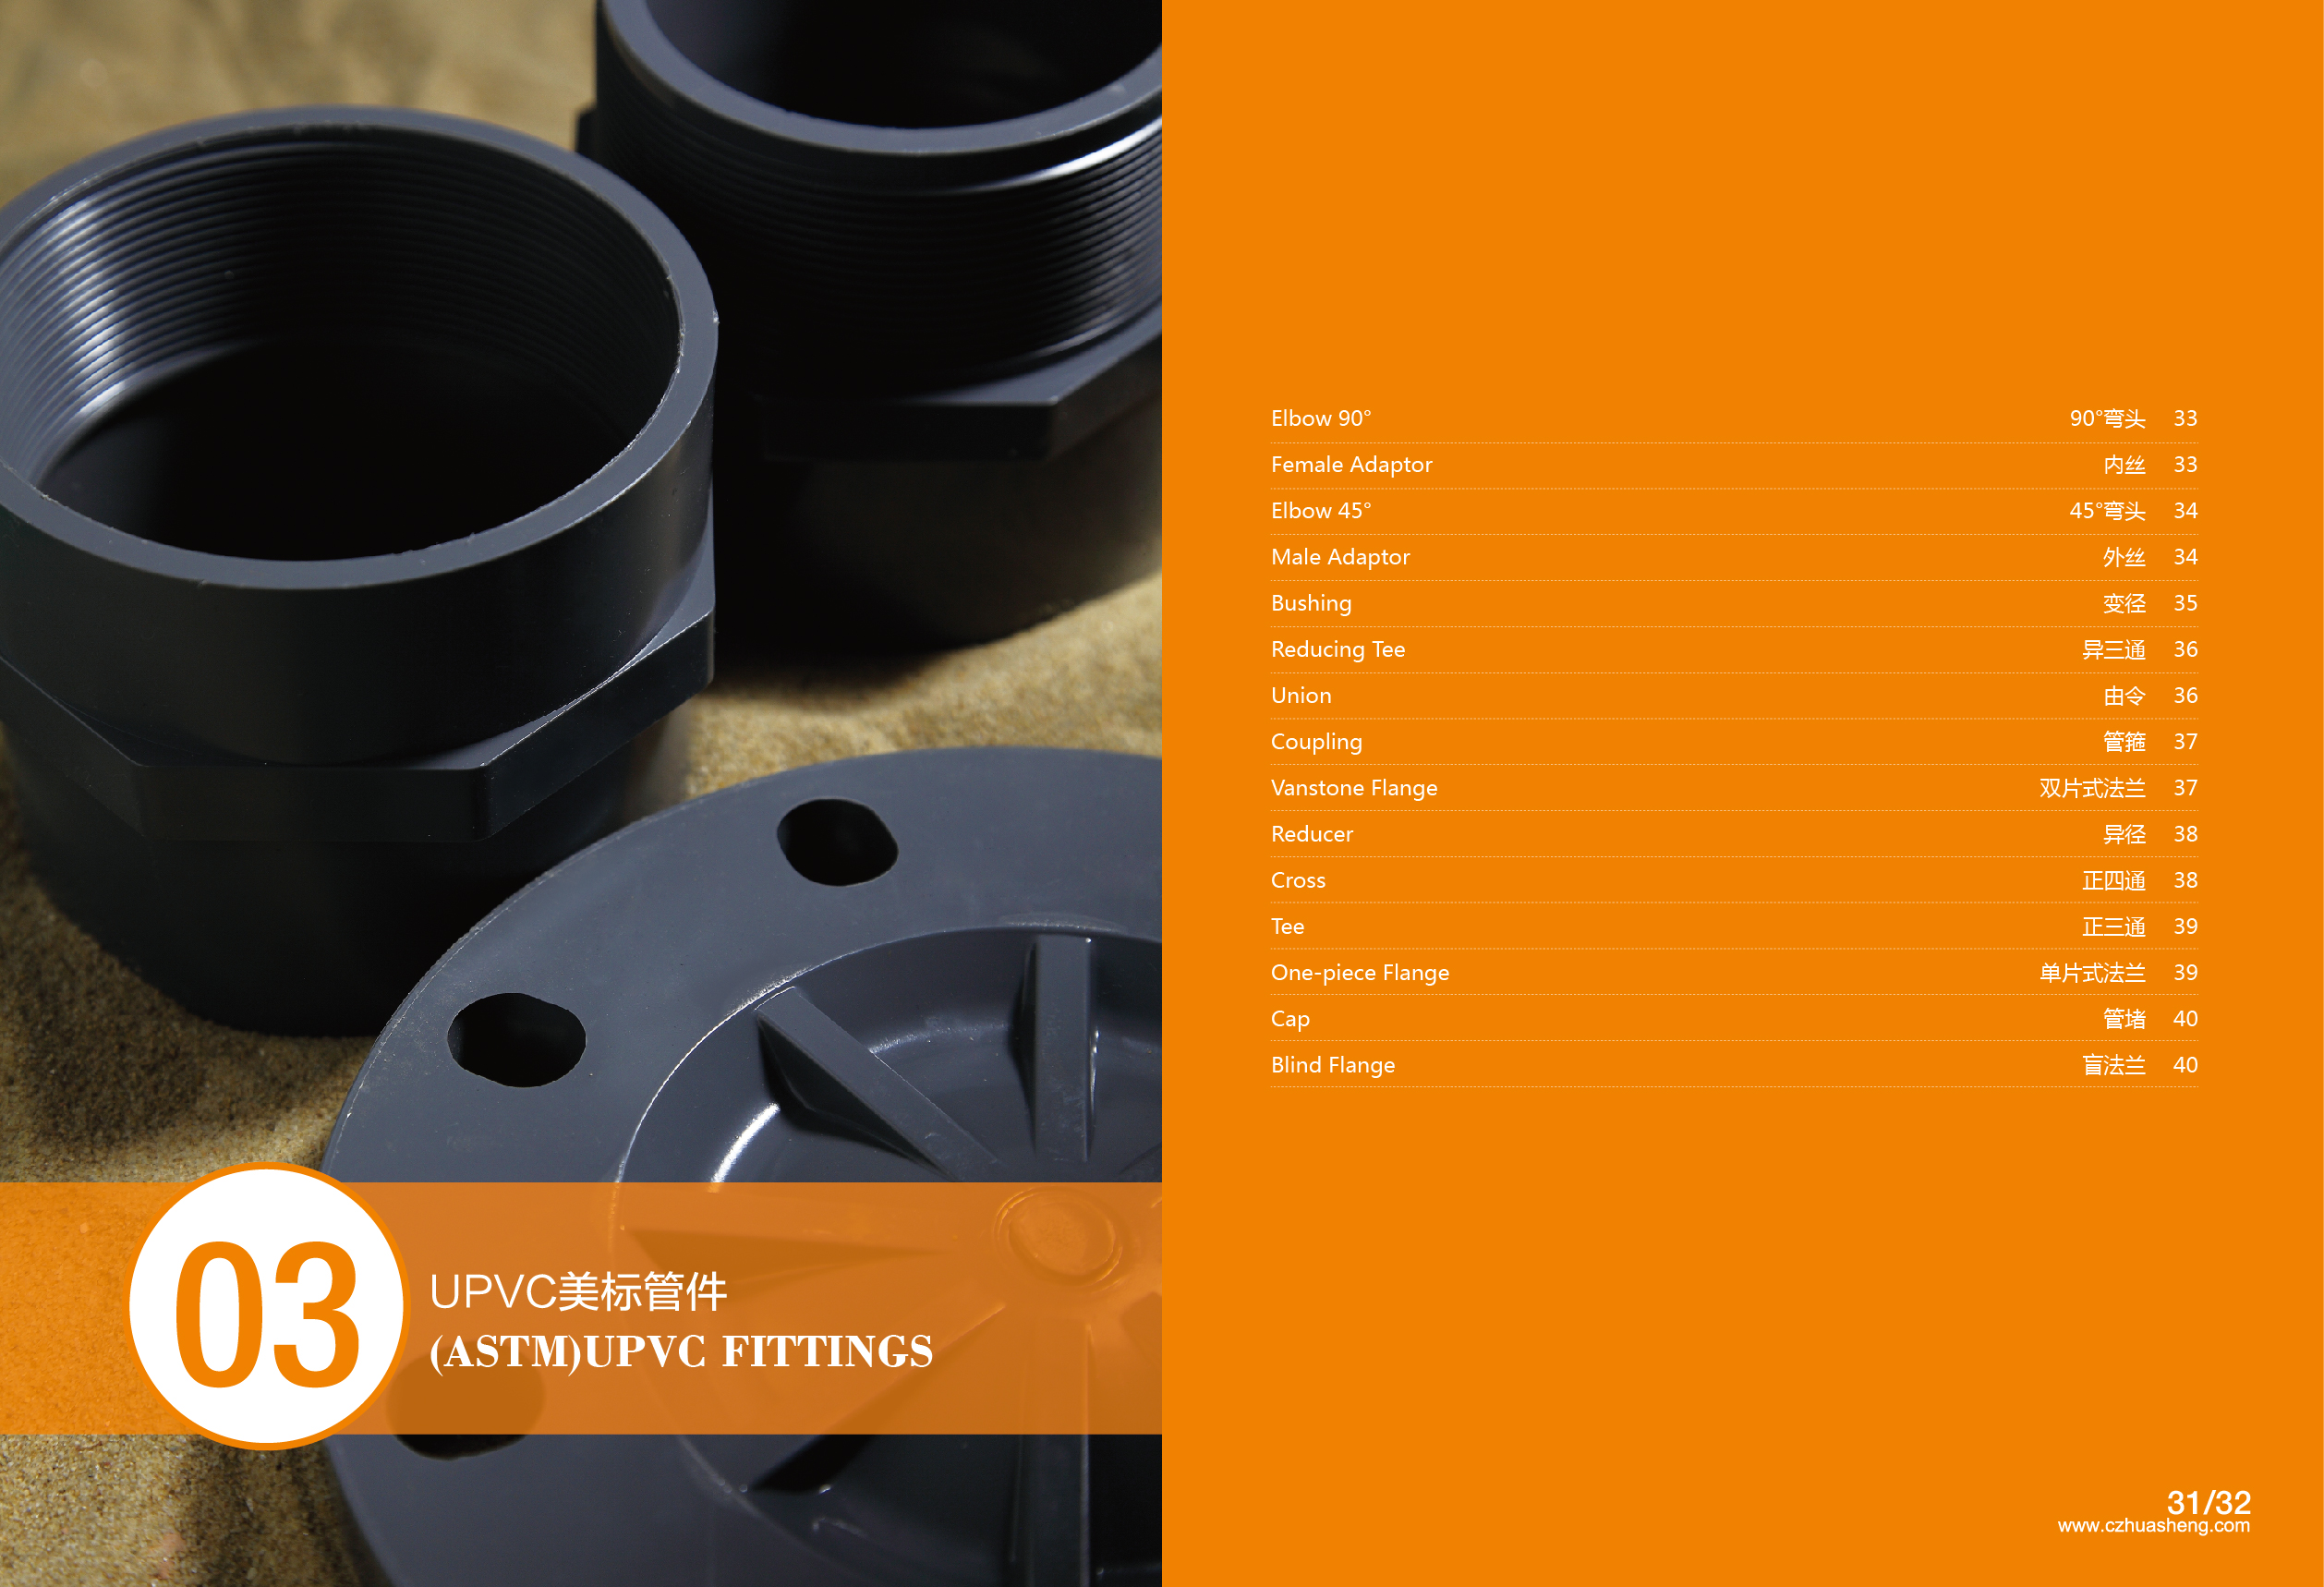 UPVC-ASTM FITTINGS CATALOG